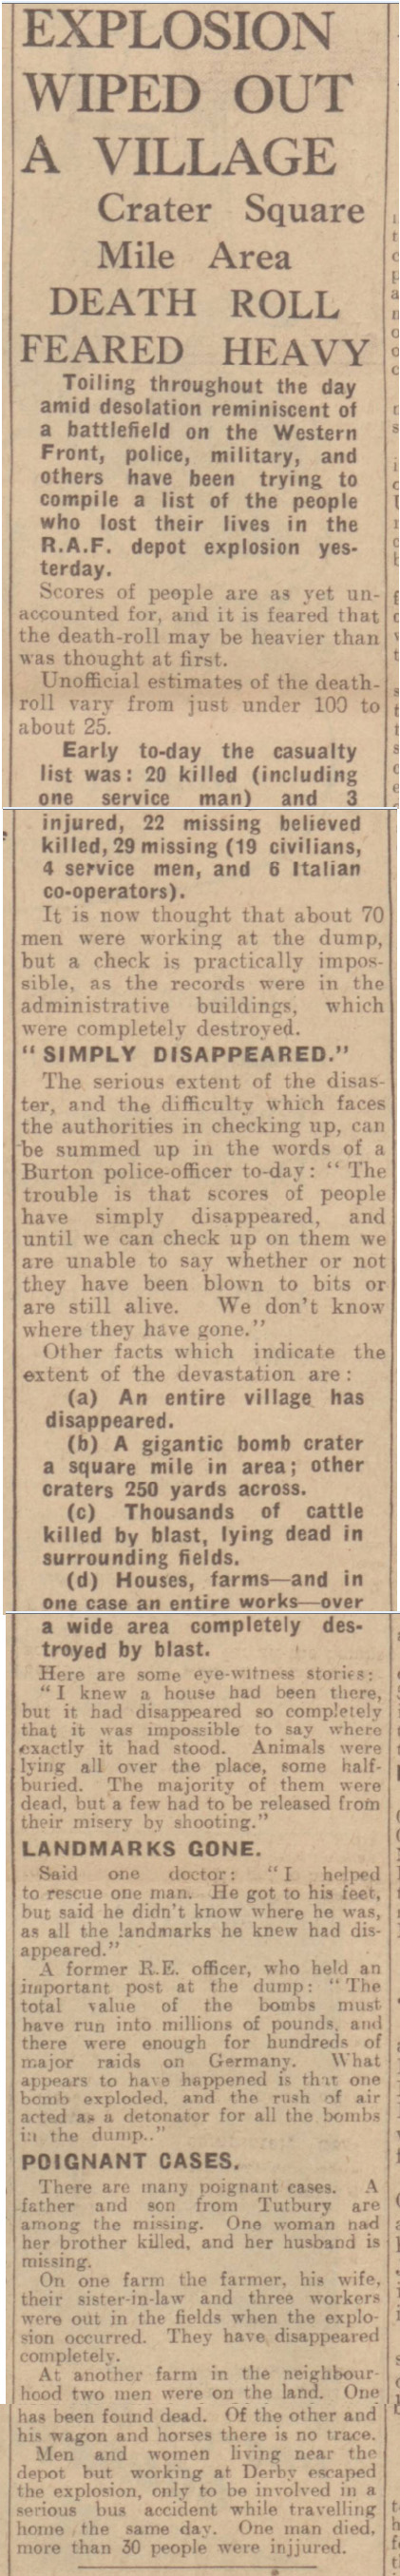 historical newspaper reports on Fauld Explosion